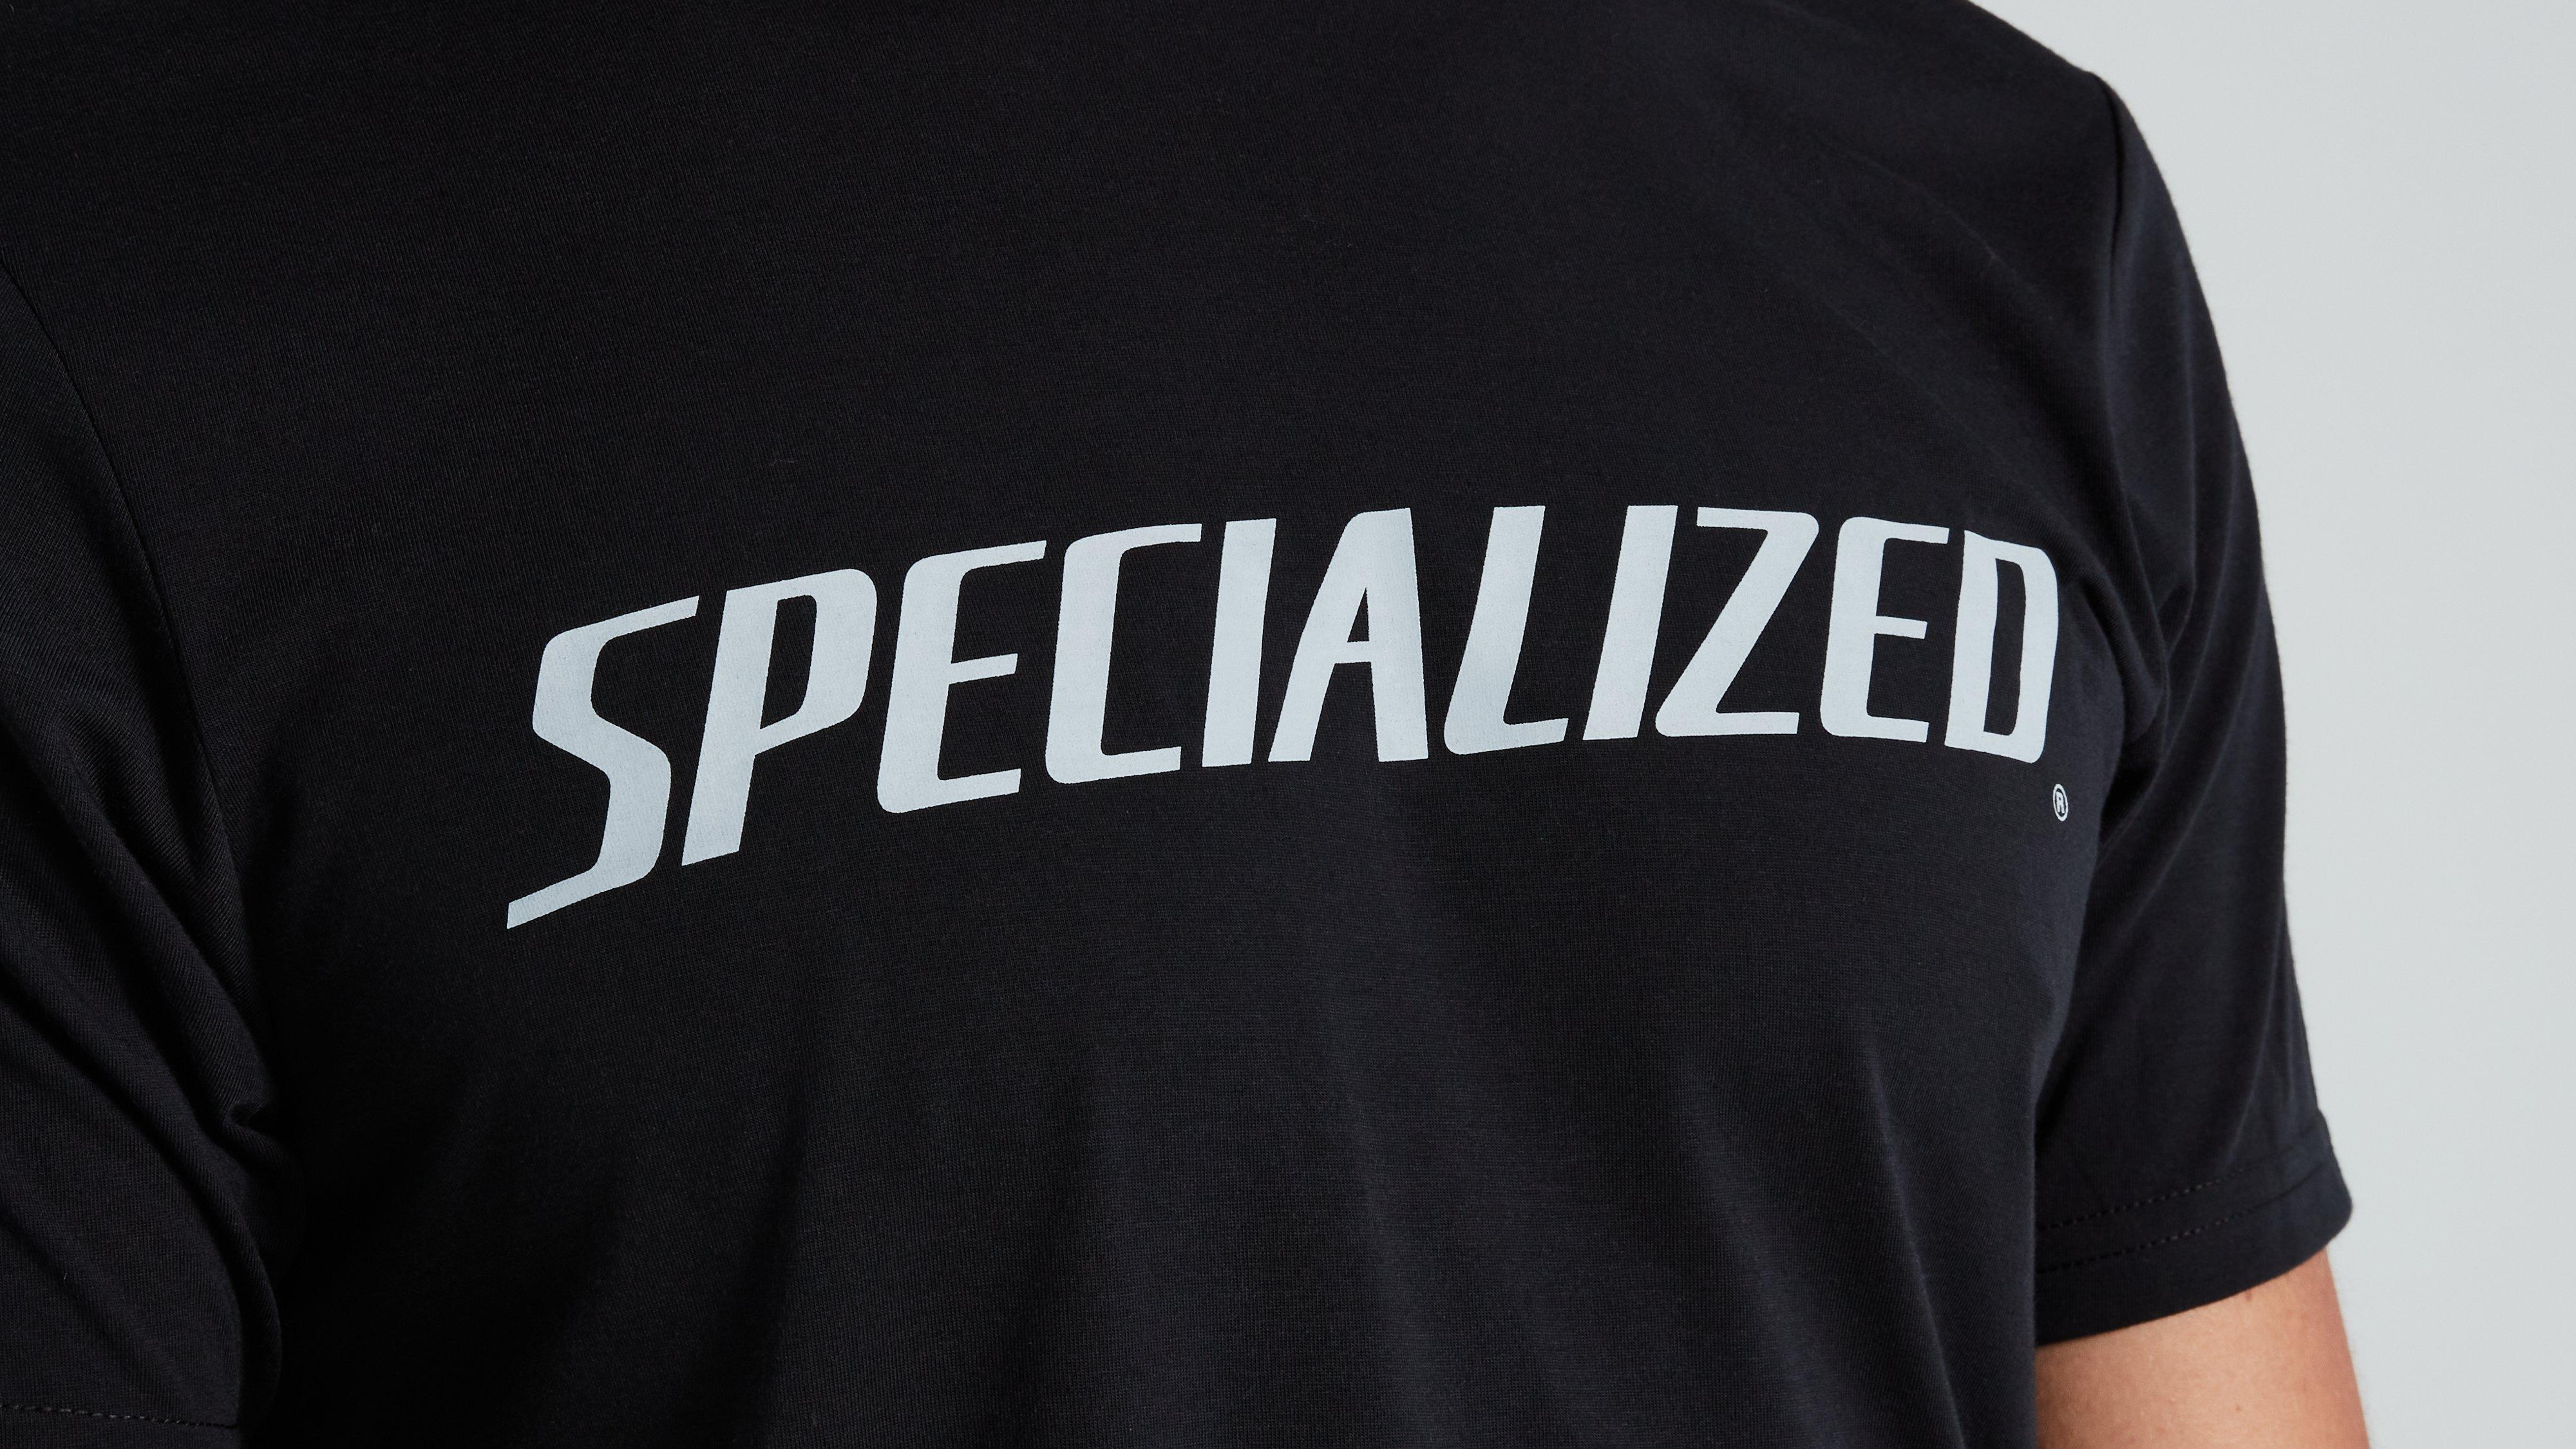 Specialized's Branded Equipment